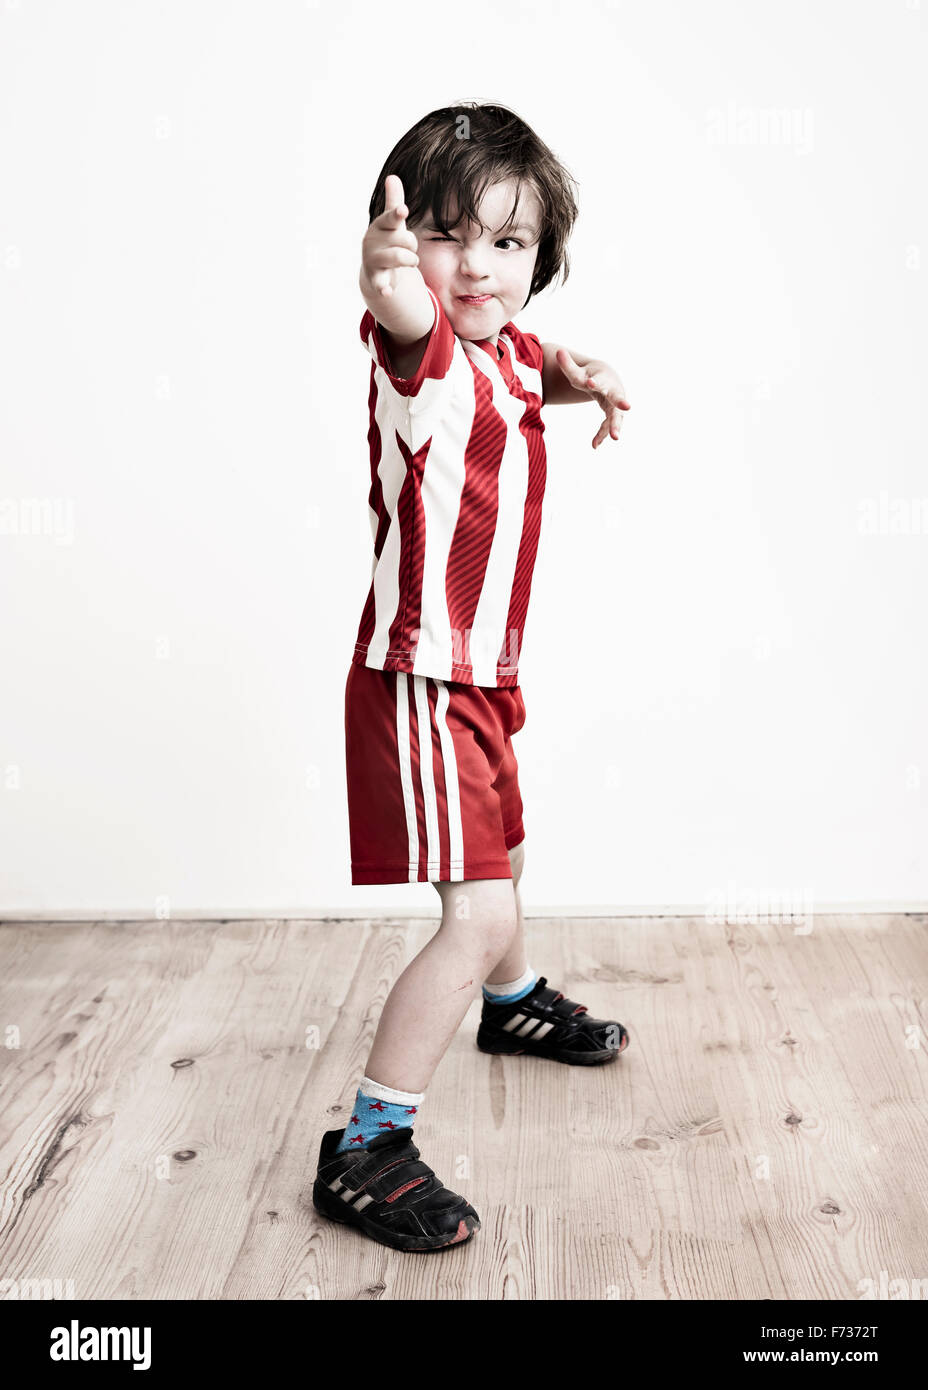 A boy in red and white striped shirt and football shorts standing pointing at the camera. Stock Photo